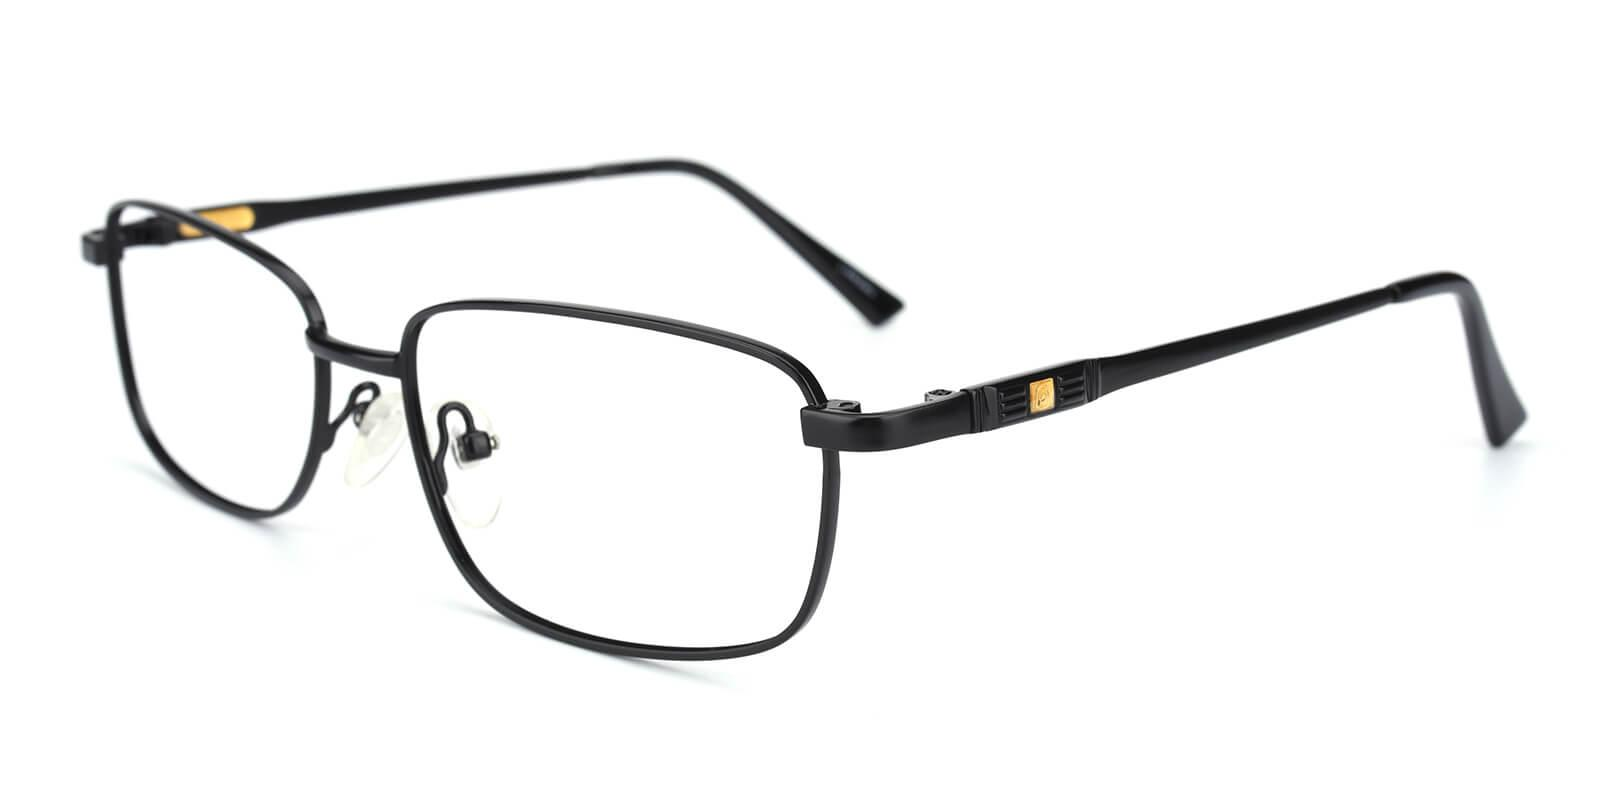 Michelly-Black-Rectangle-Metal-Eyeglasses-additional1